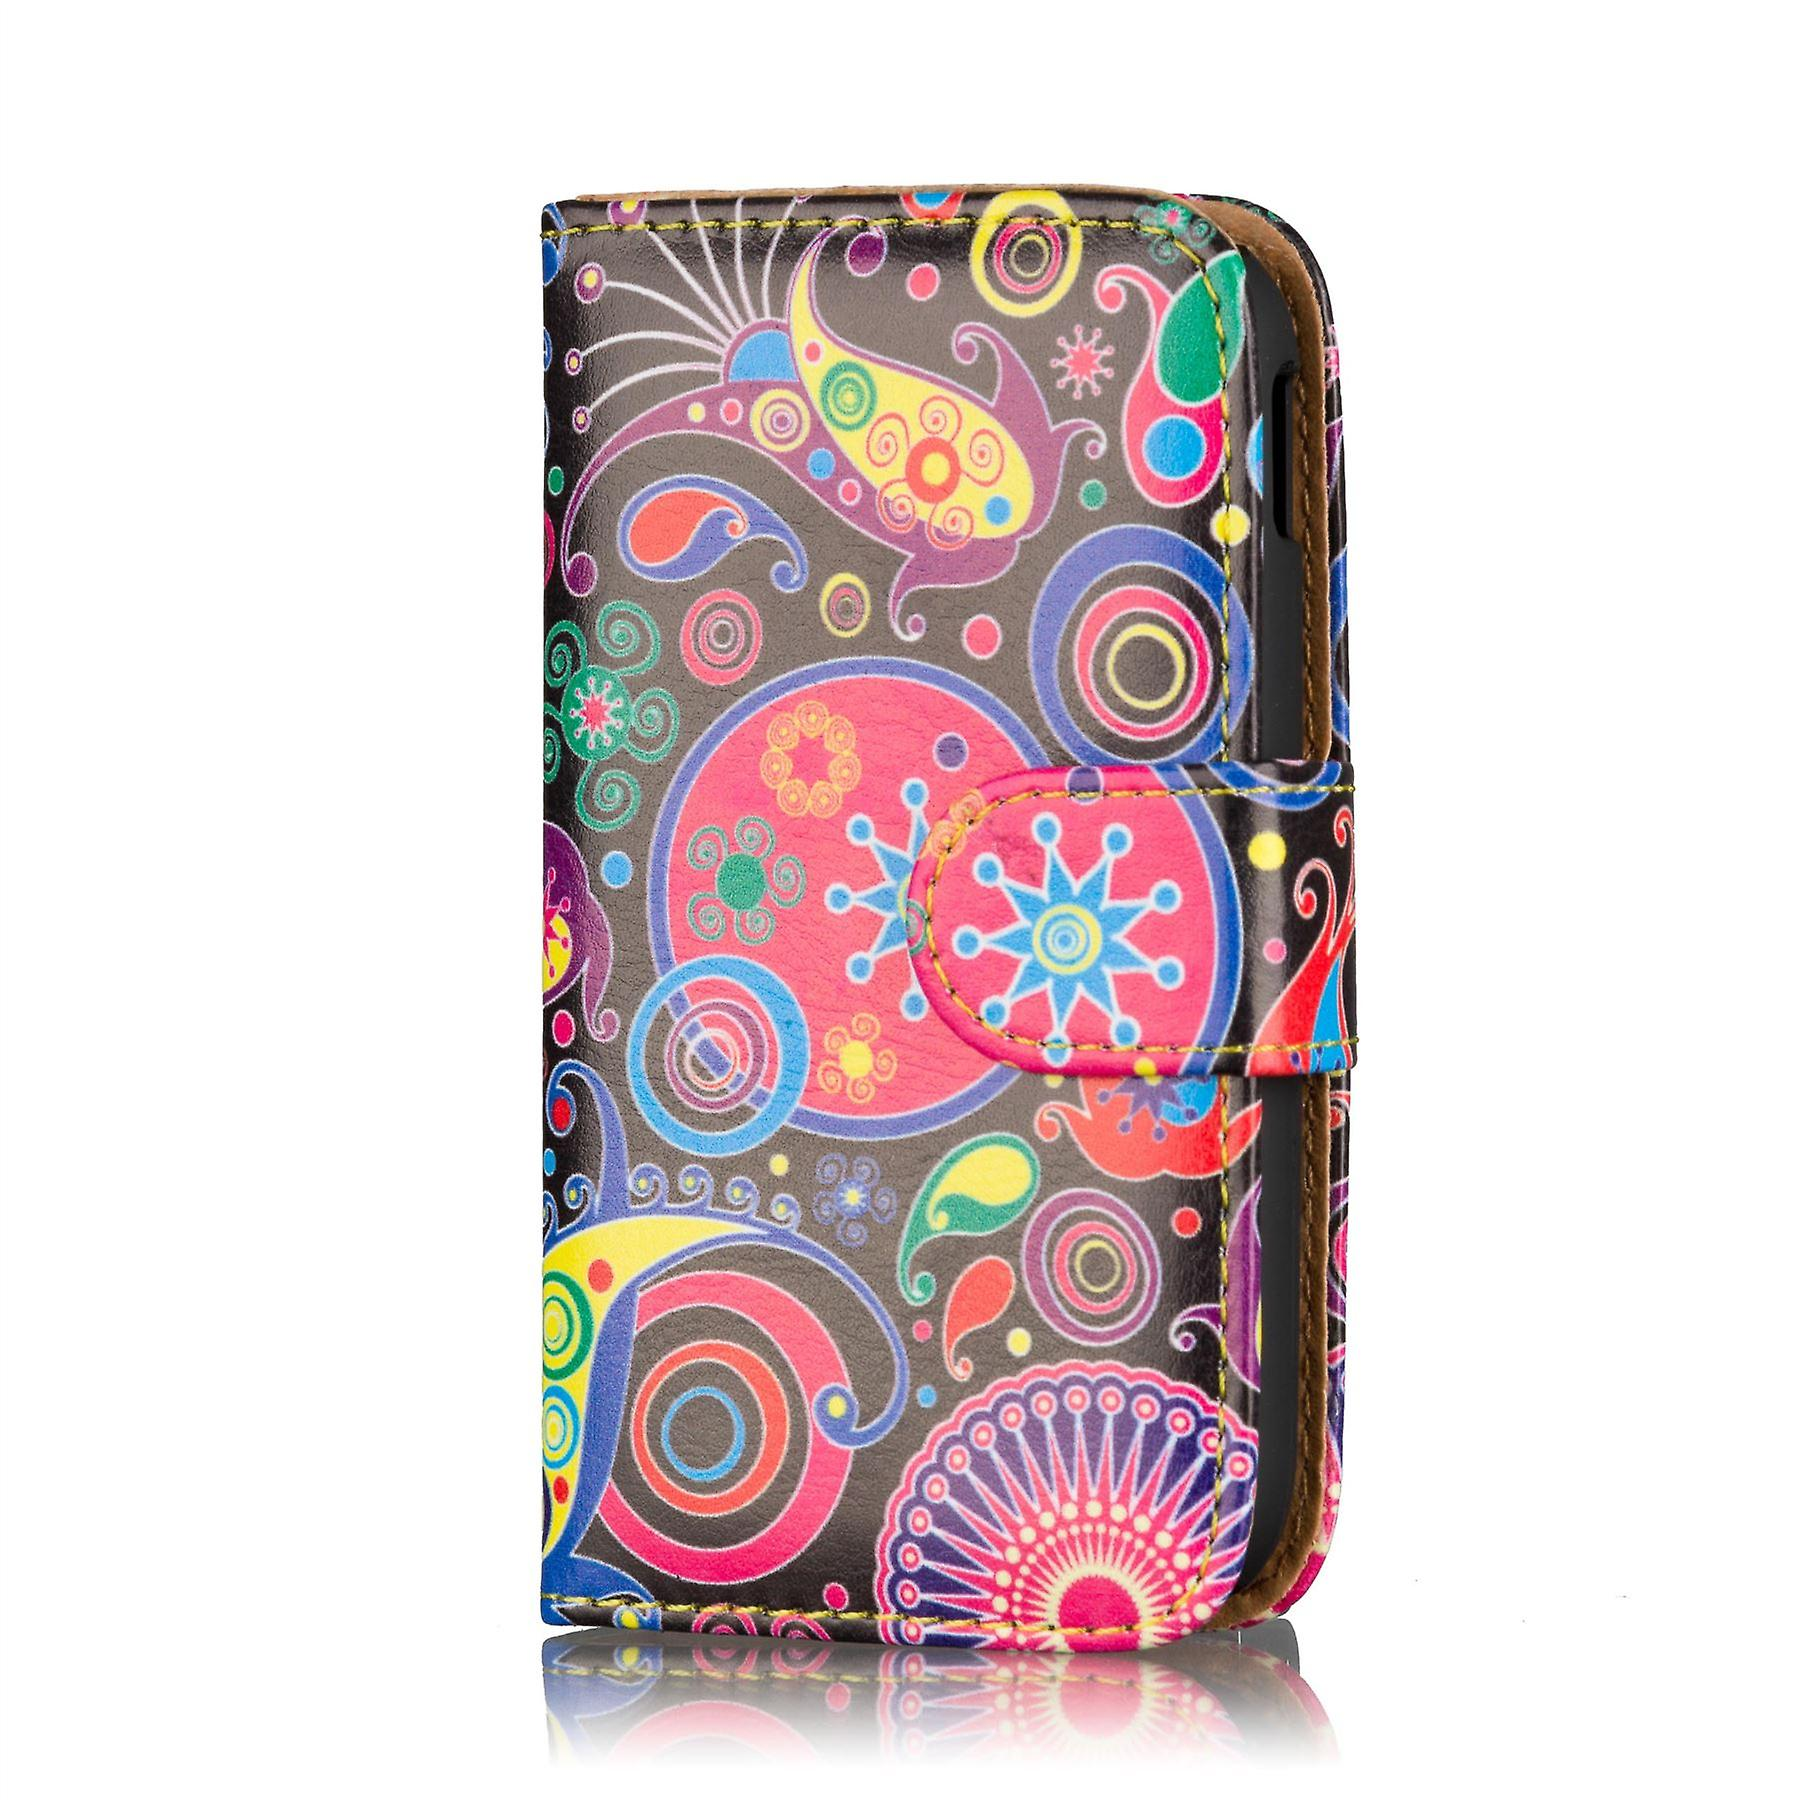 Design book PU leather case cover for Sony Xperia Z3 Compact - Jellyfish